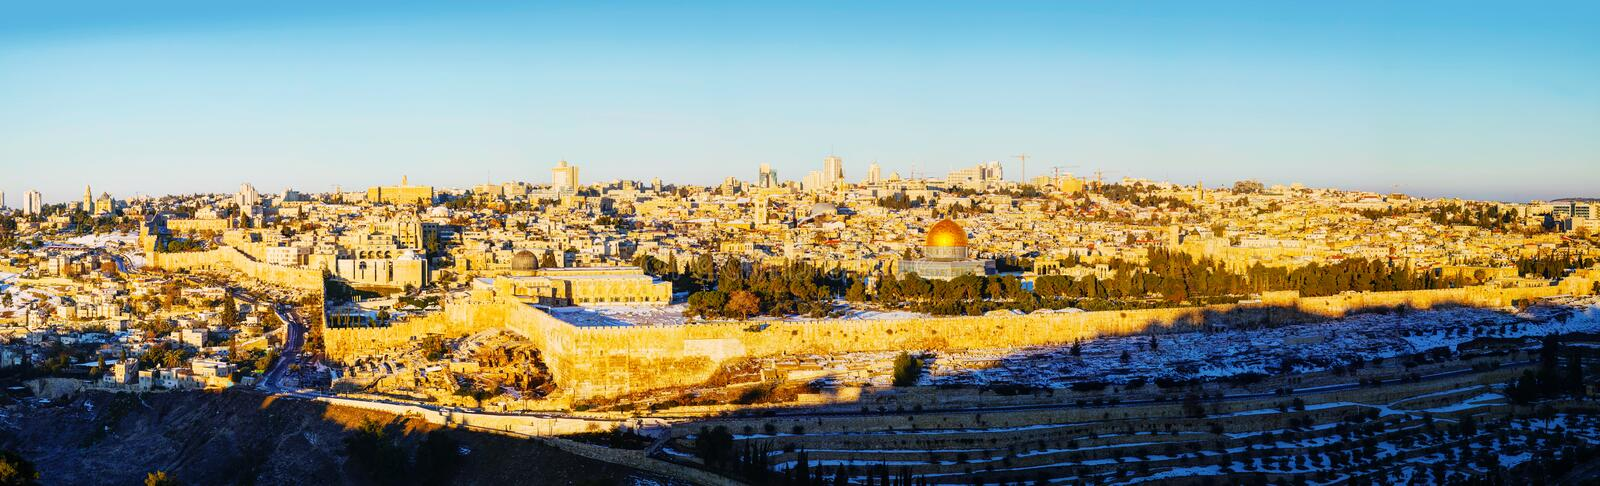 Old City in Jerusalem, Israel panorama. Panorama of Old City in Jerusalem, Israel with The Golden Dome Mosque stock images